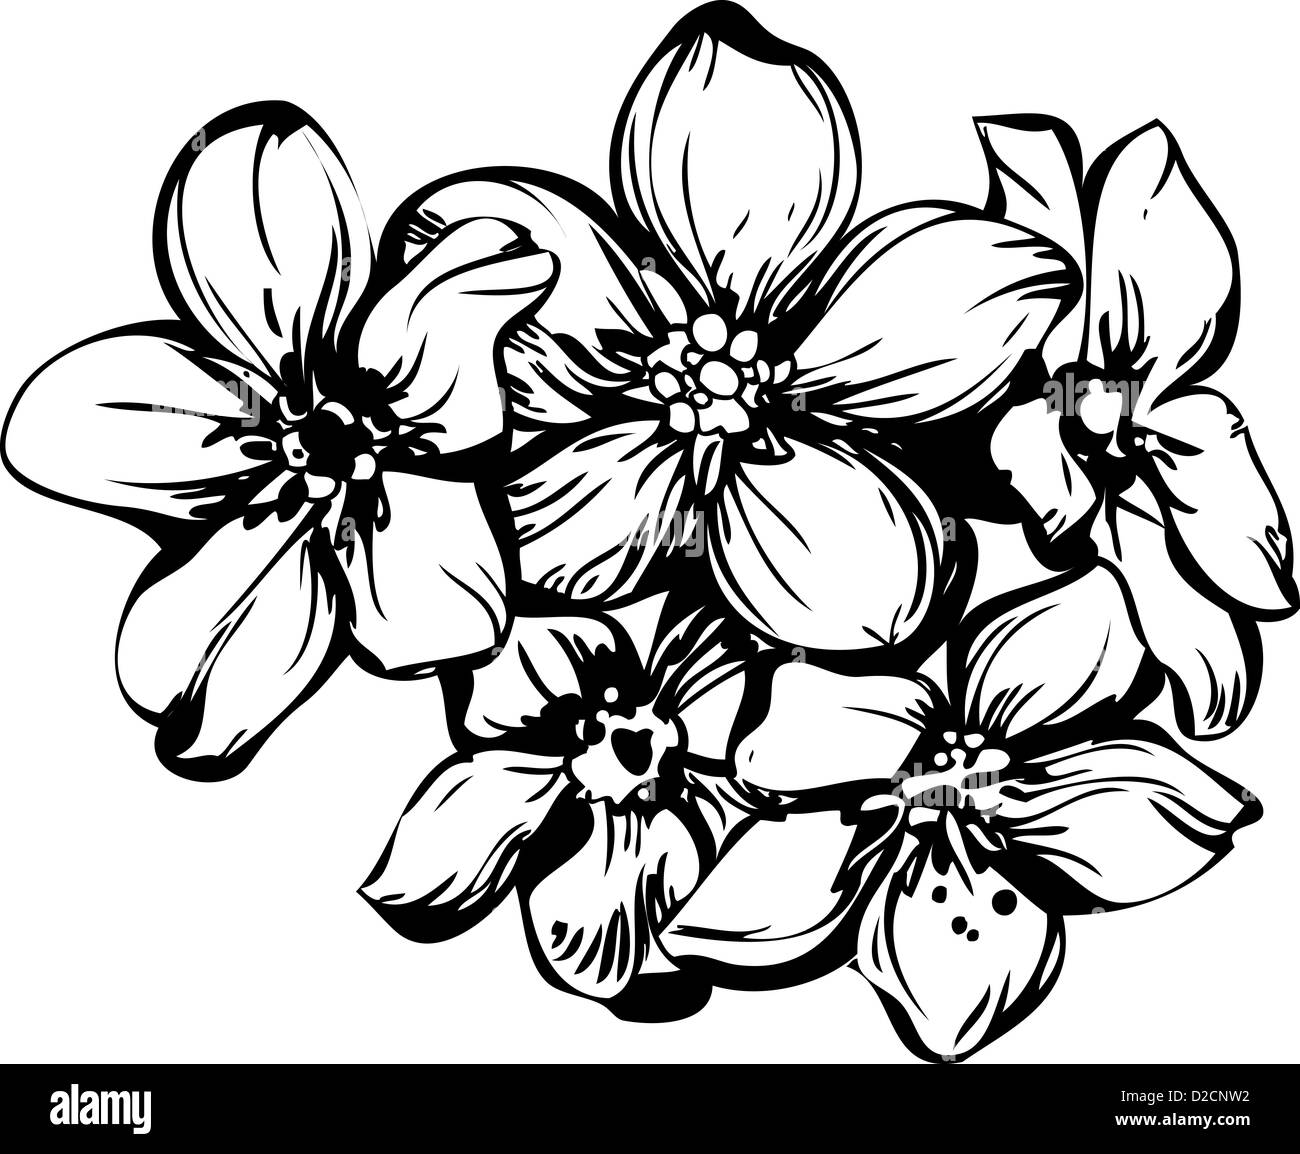 sketch five flowerets in one bouquet Stock Photo